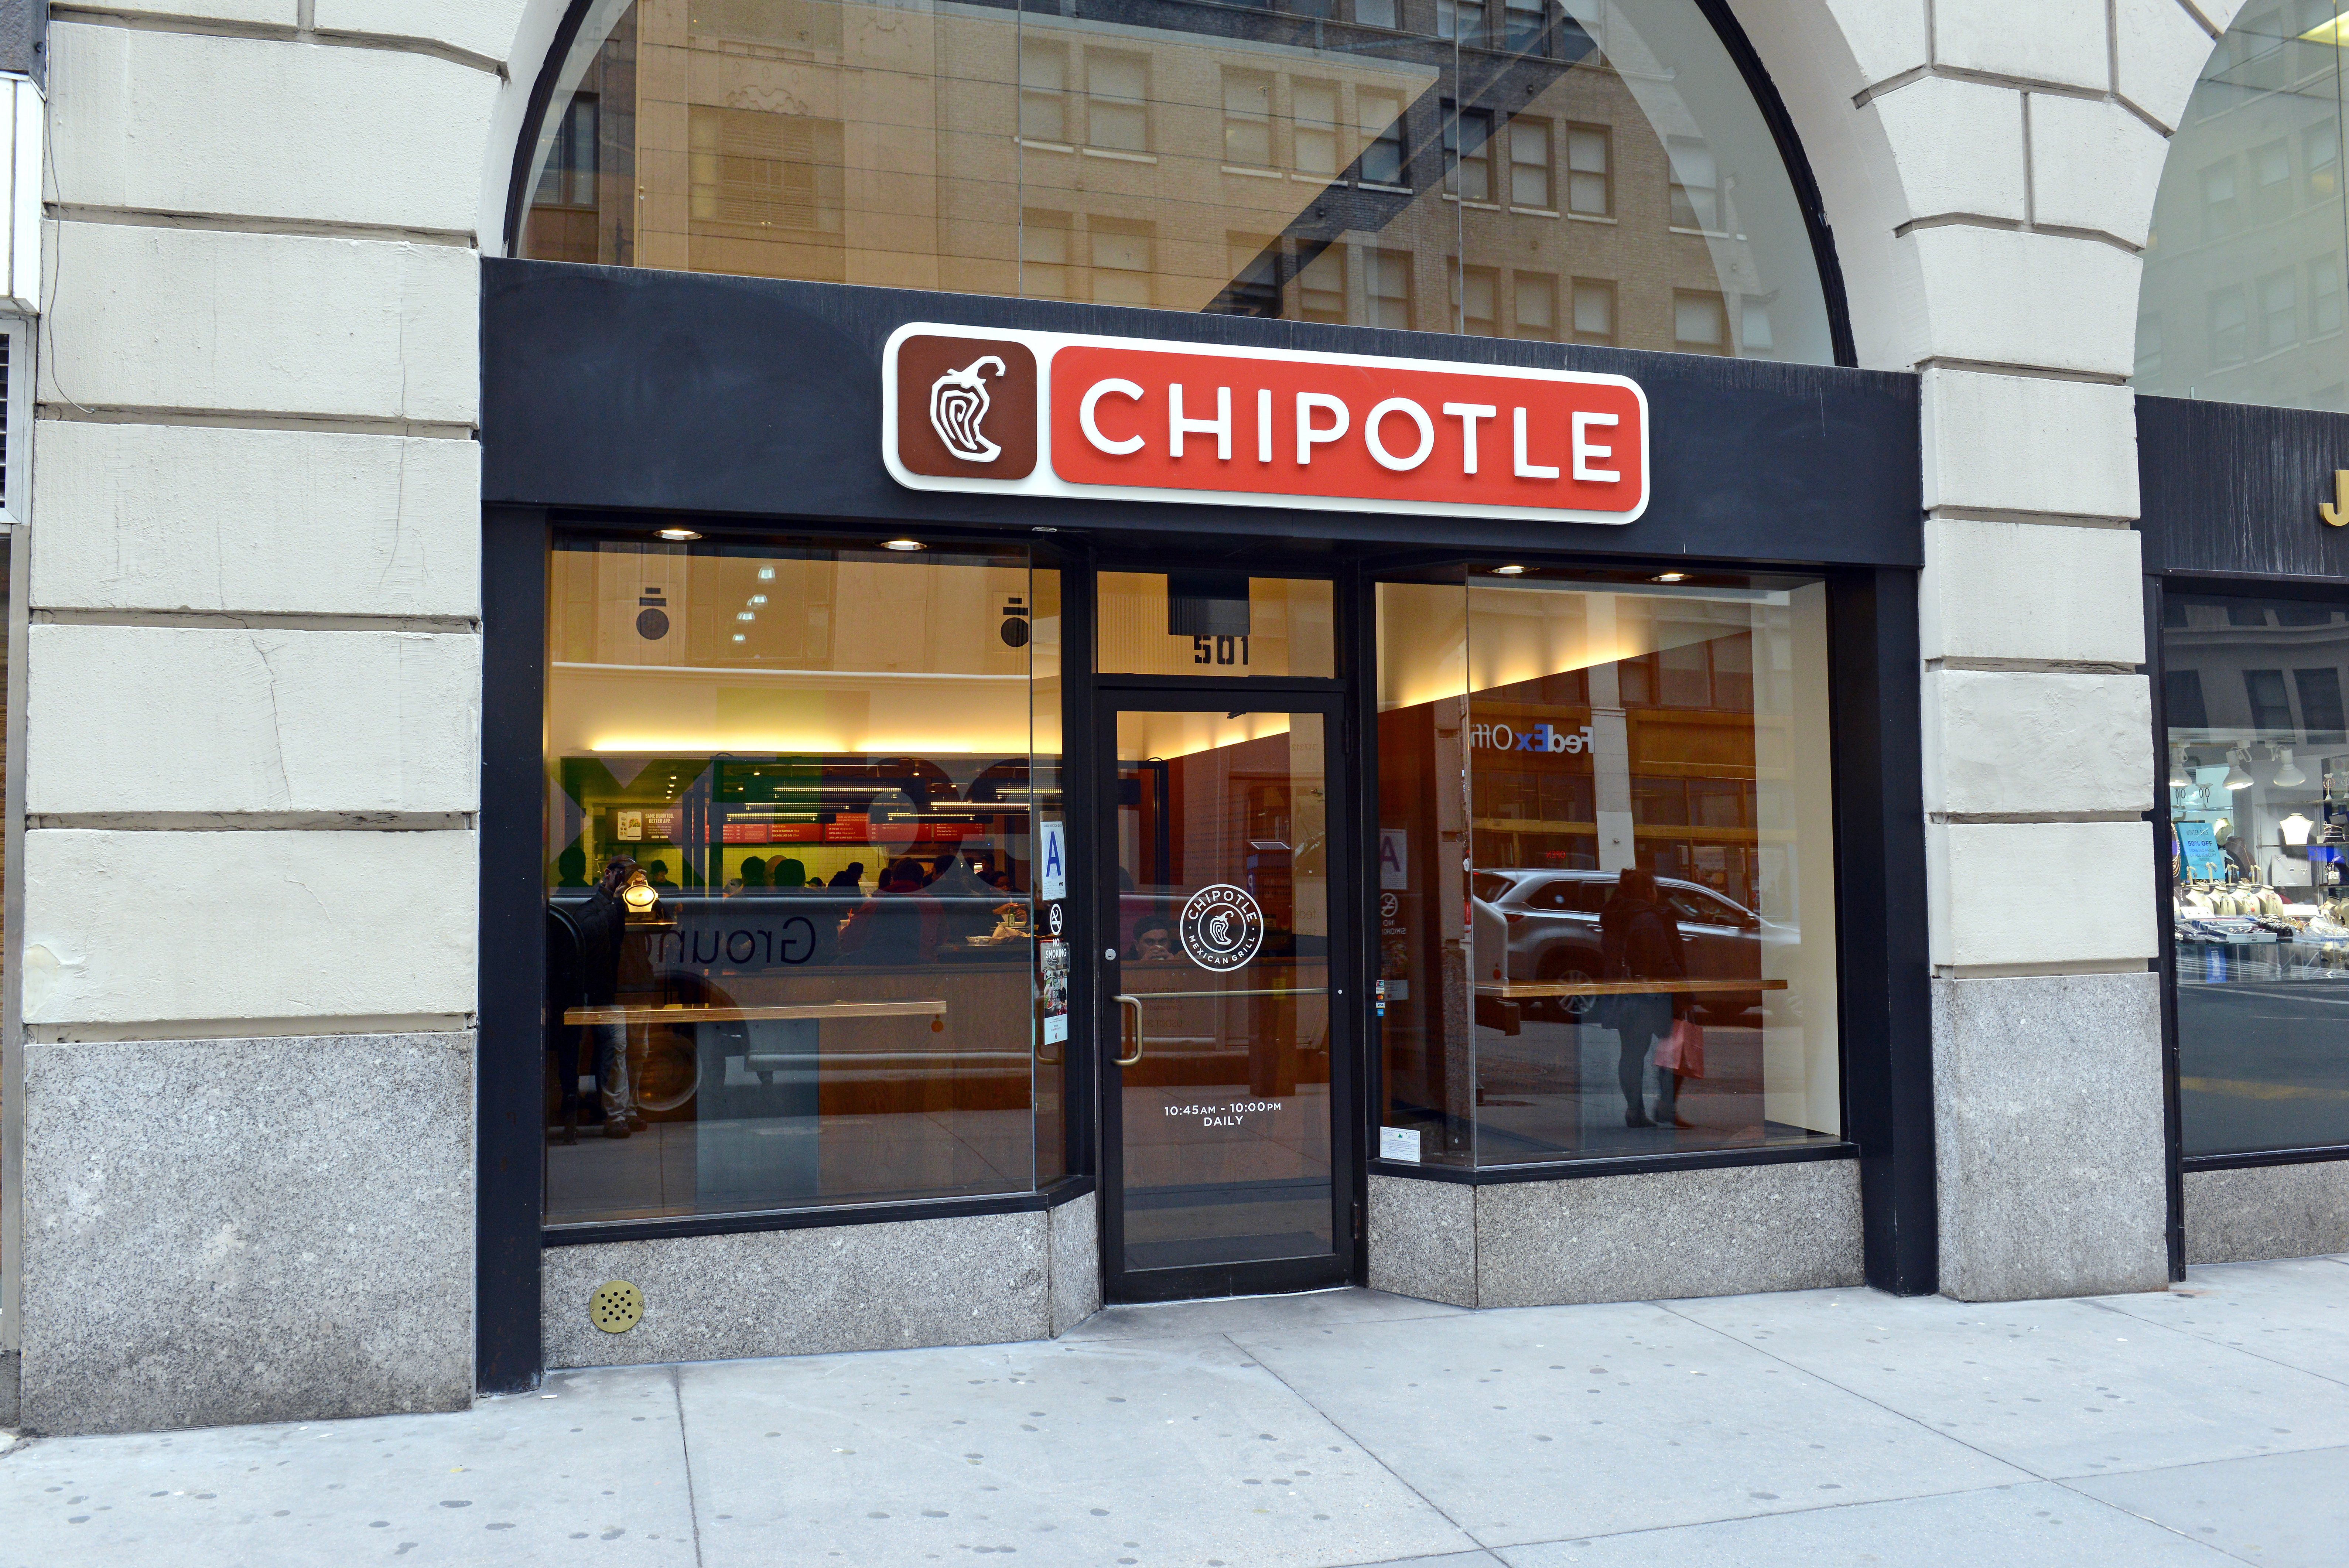 exterior of chipotle store